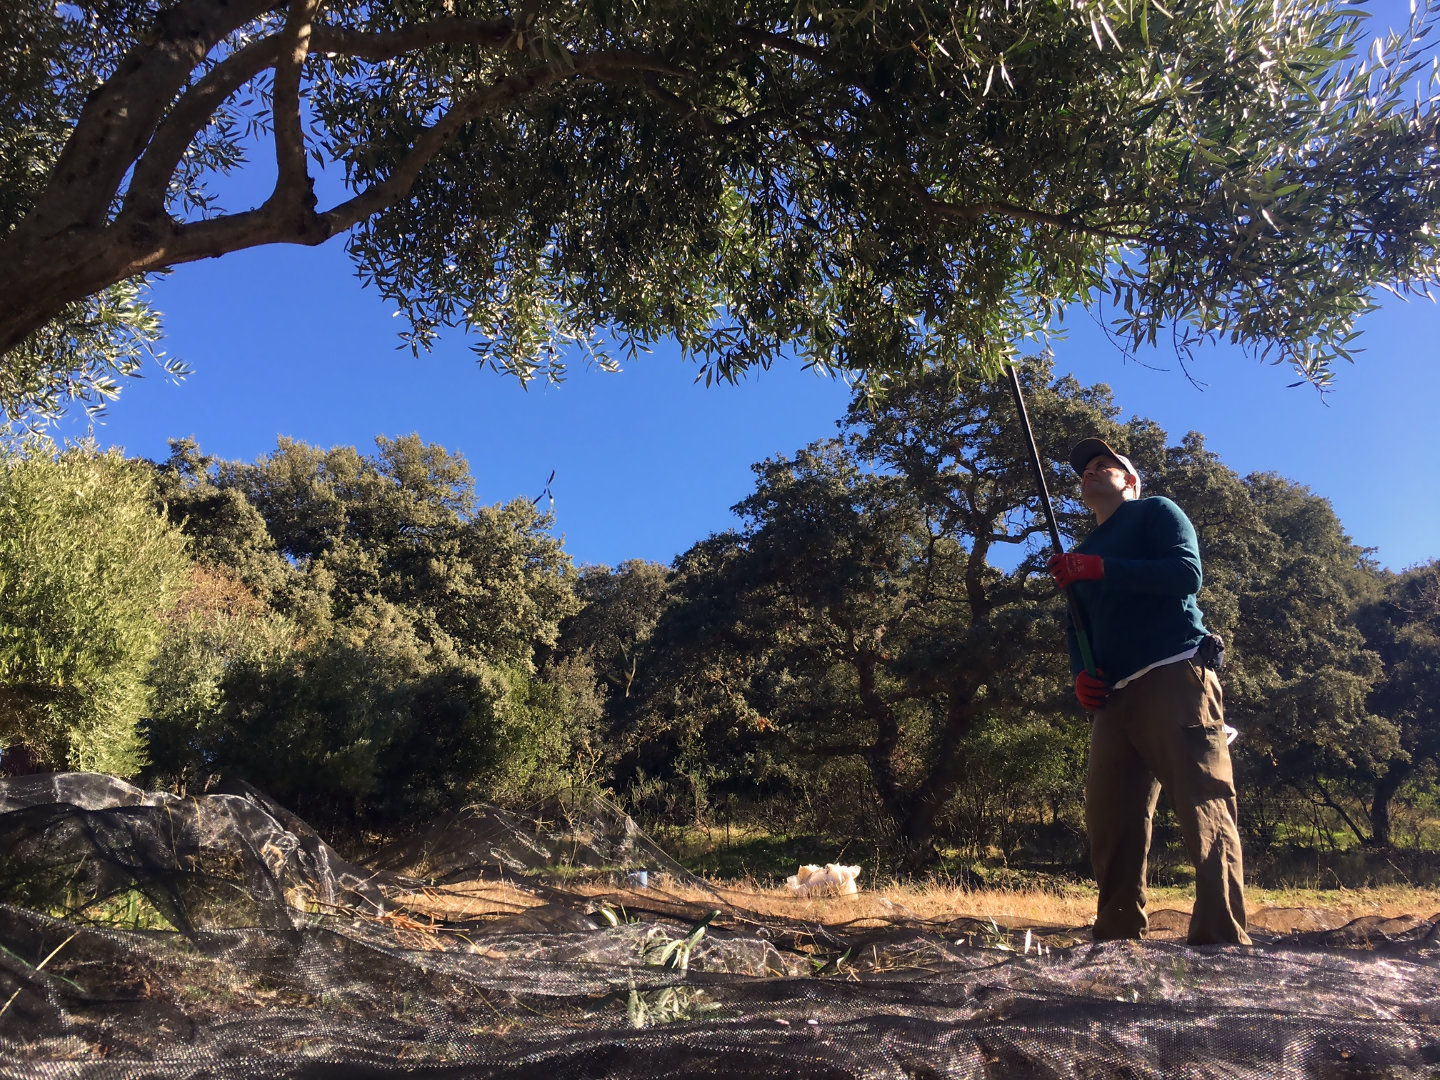 Olive harvesting at our luxury villa rental in Ronda, Andalucia, Spain